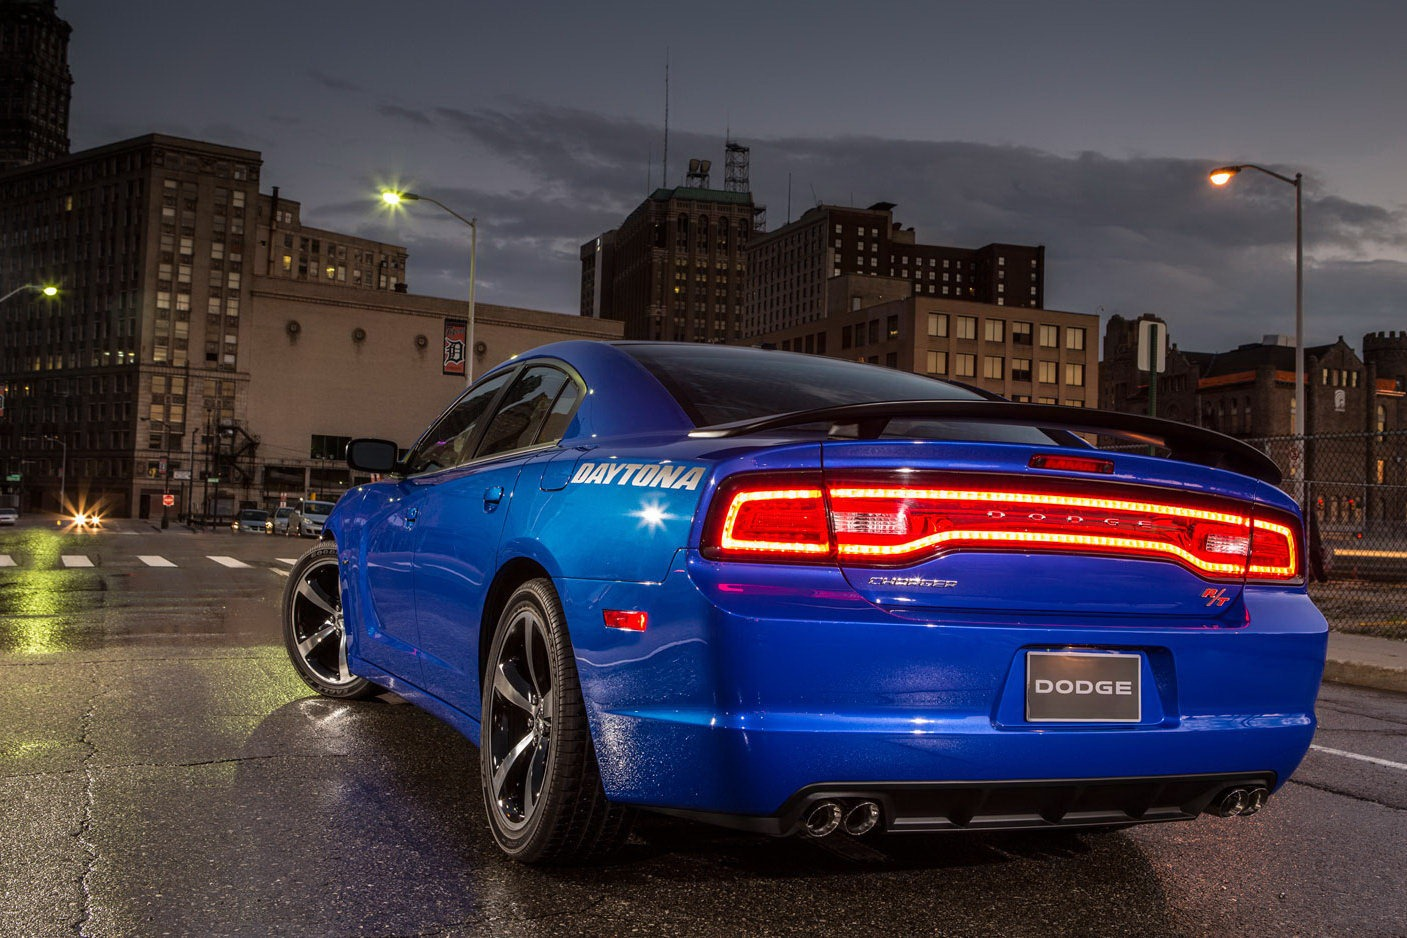 2012 Los Angeles Auto Show Preview: 2013 Dodge Charger Daytona